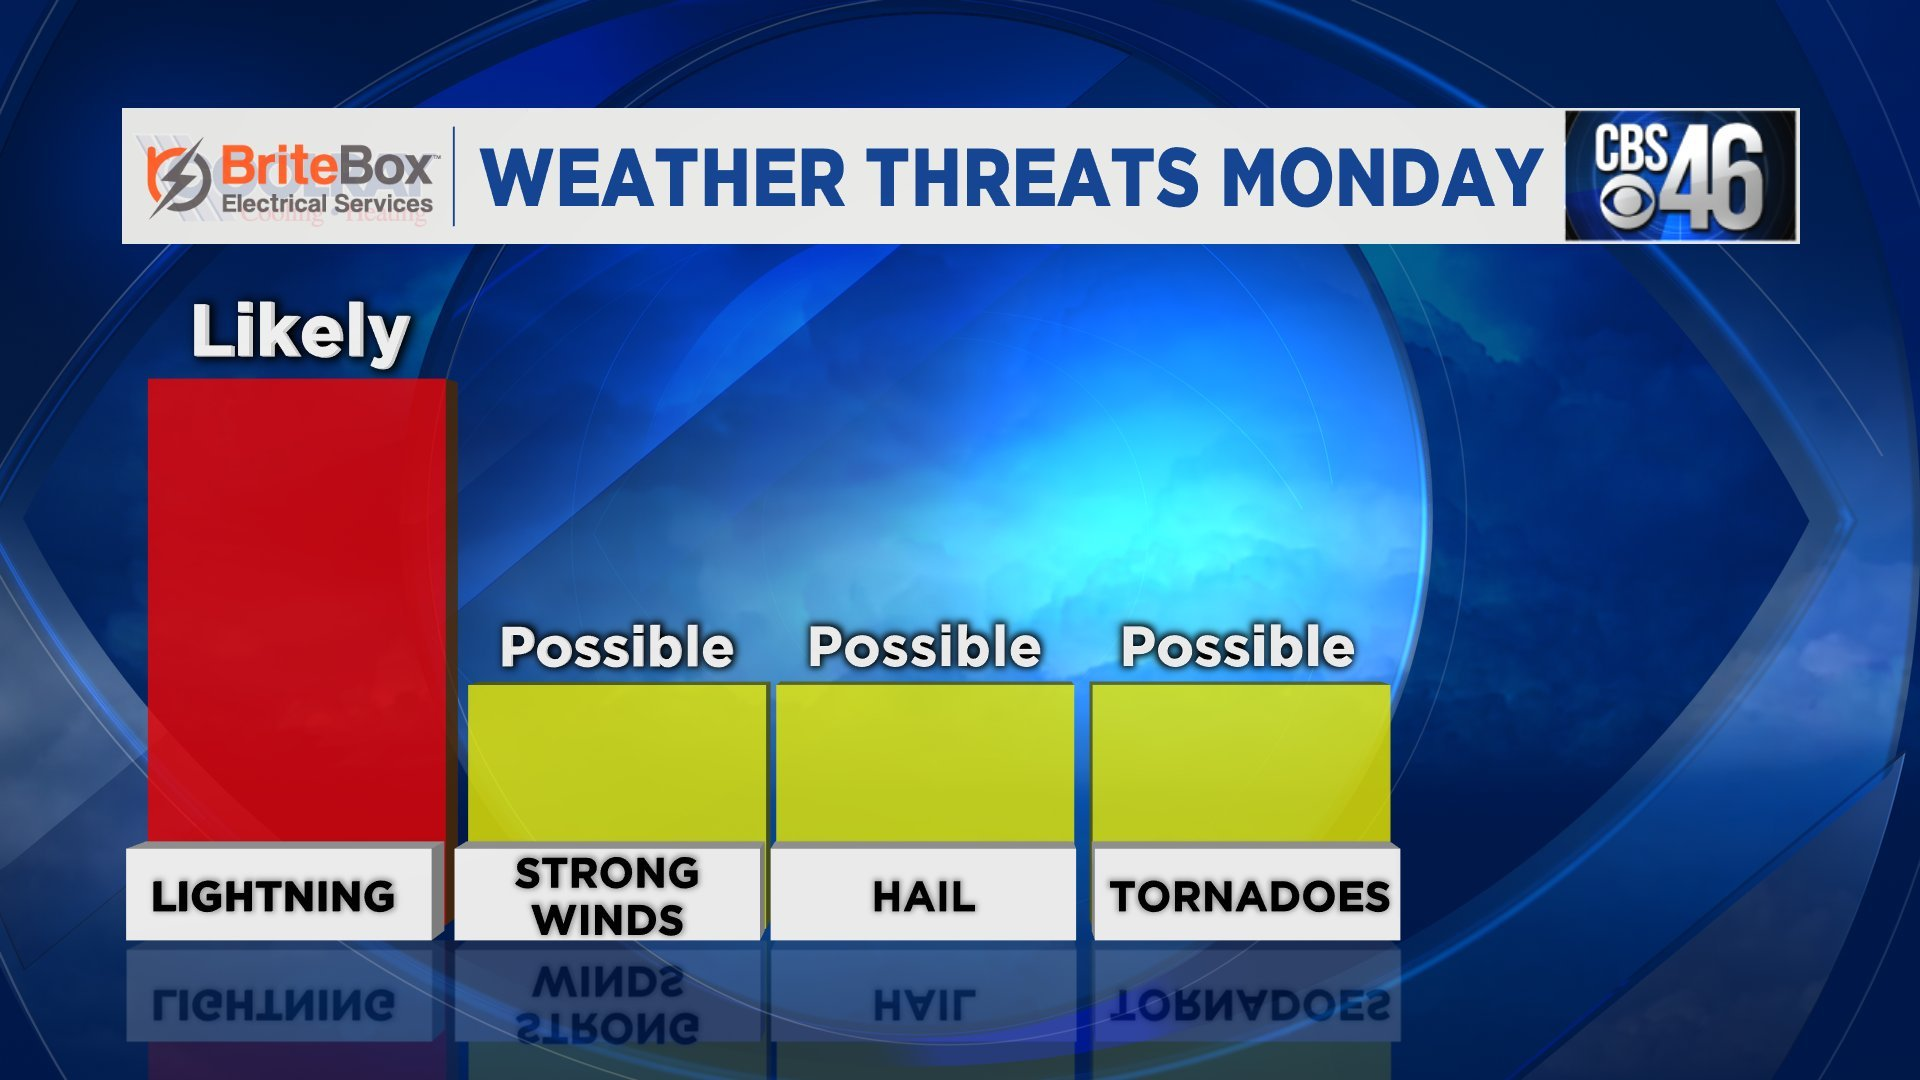 Local schools close early today in advance of severe weather threat